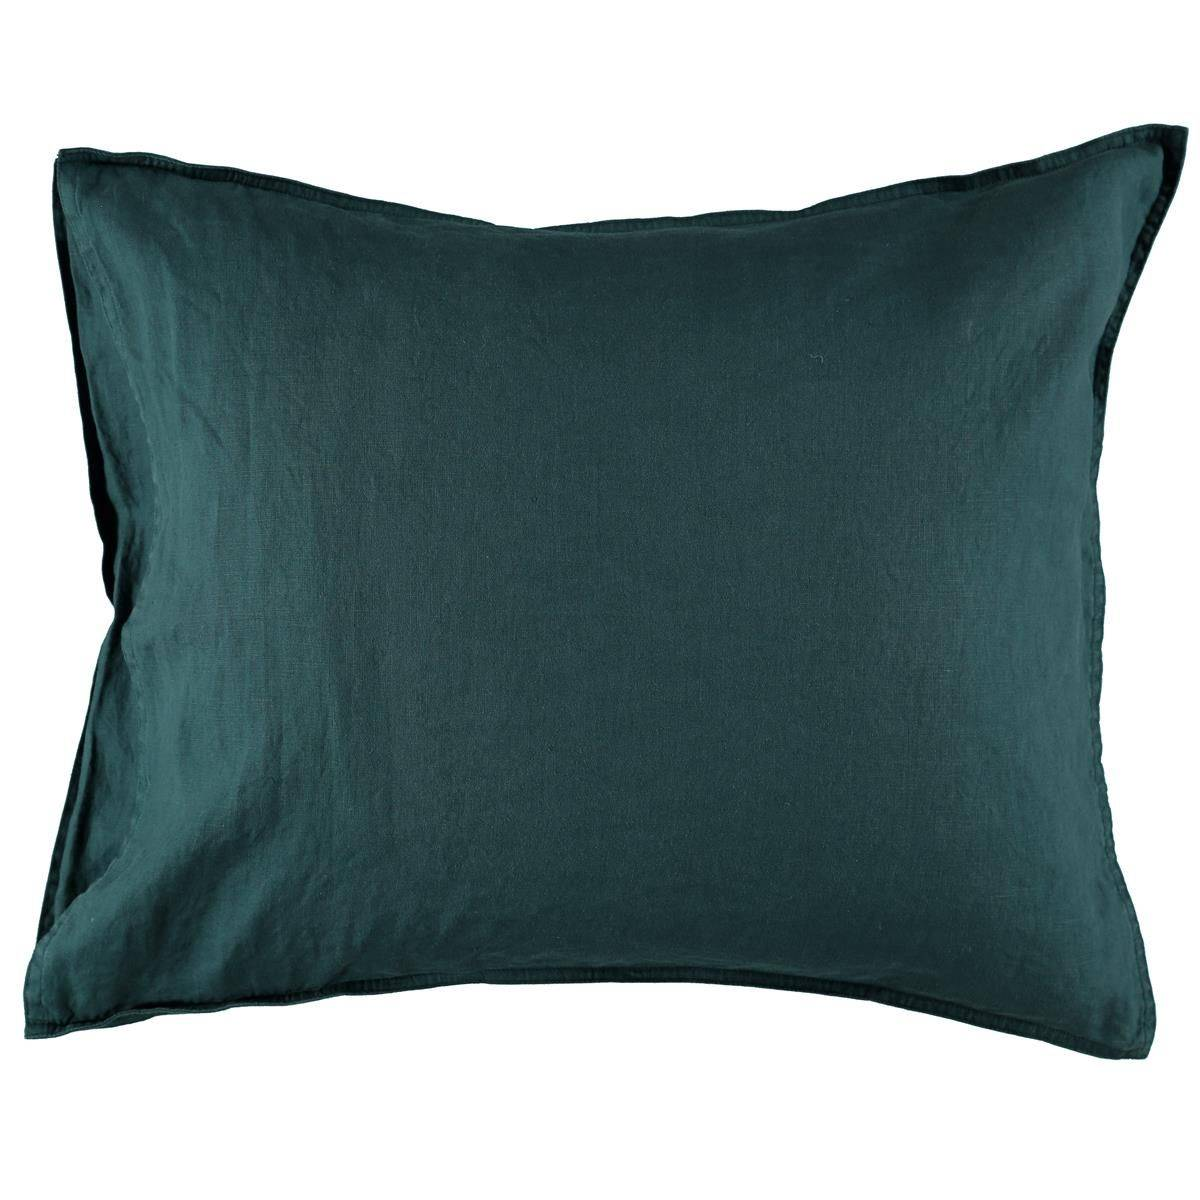 Gripsholm Washed Linen Pillowcase 50x60 cm, Petrol